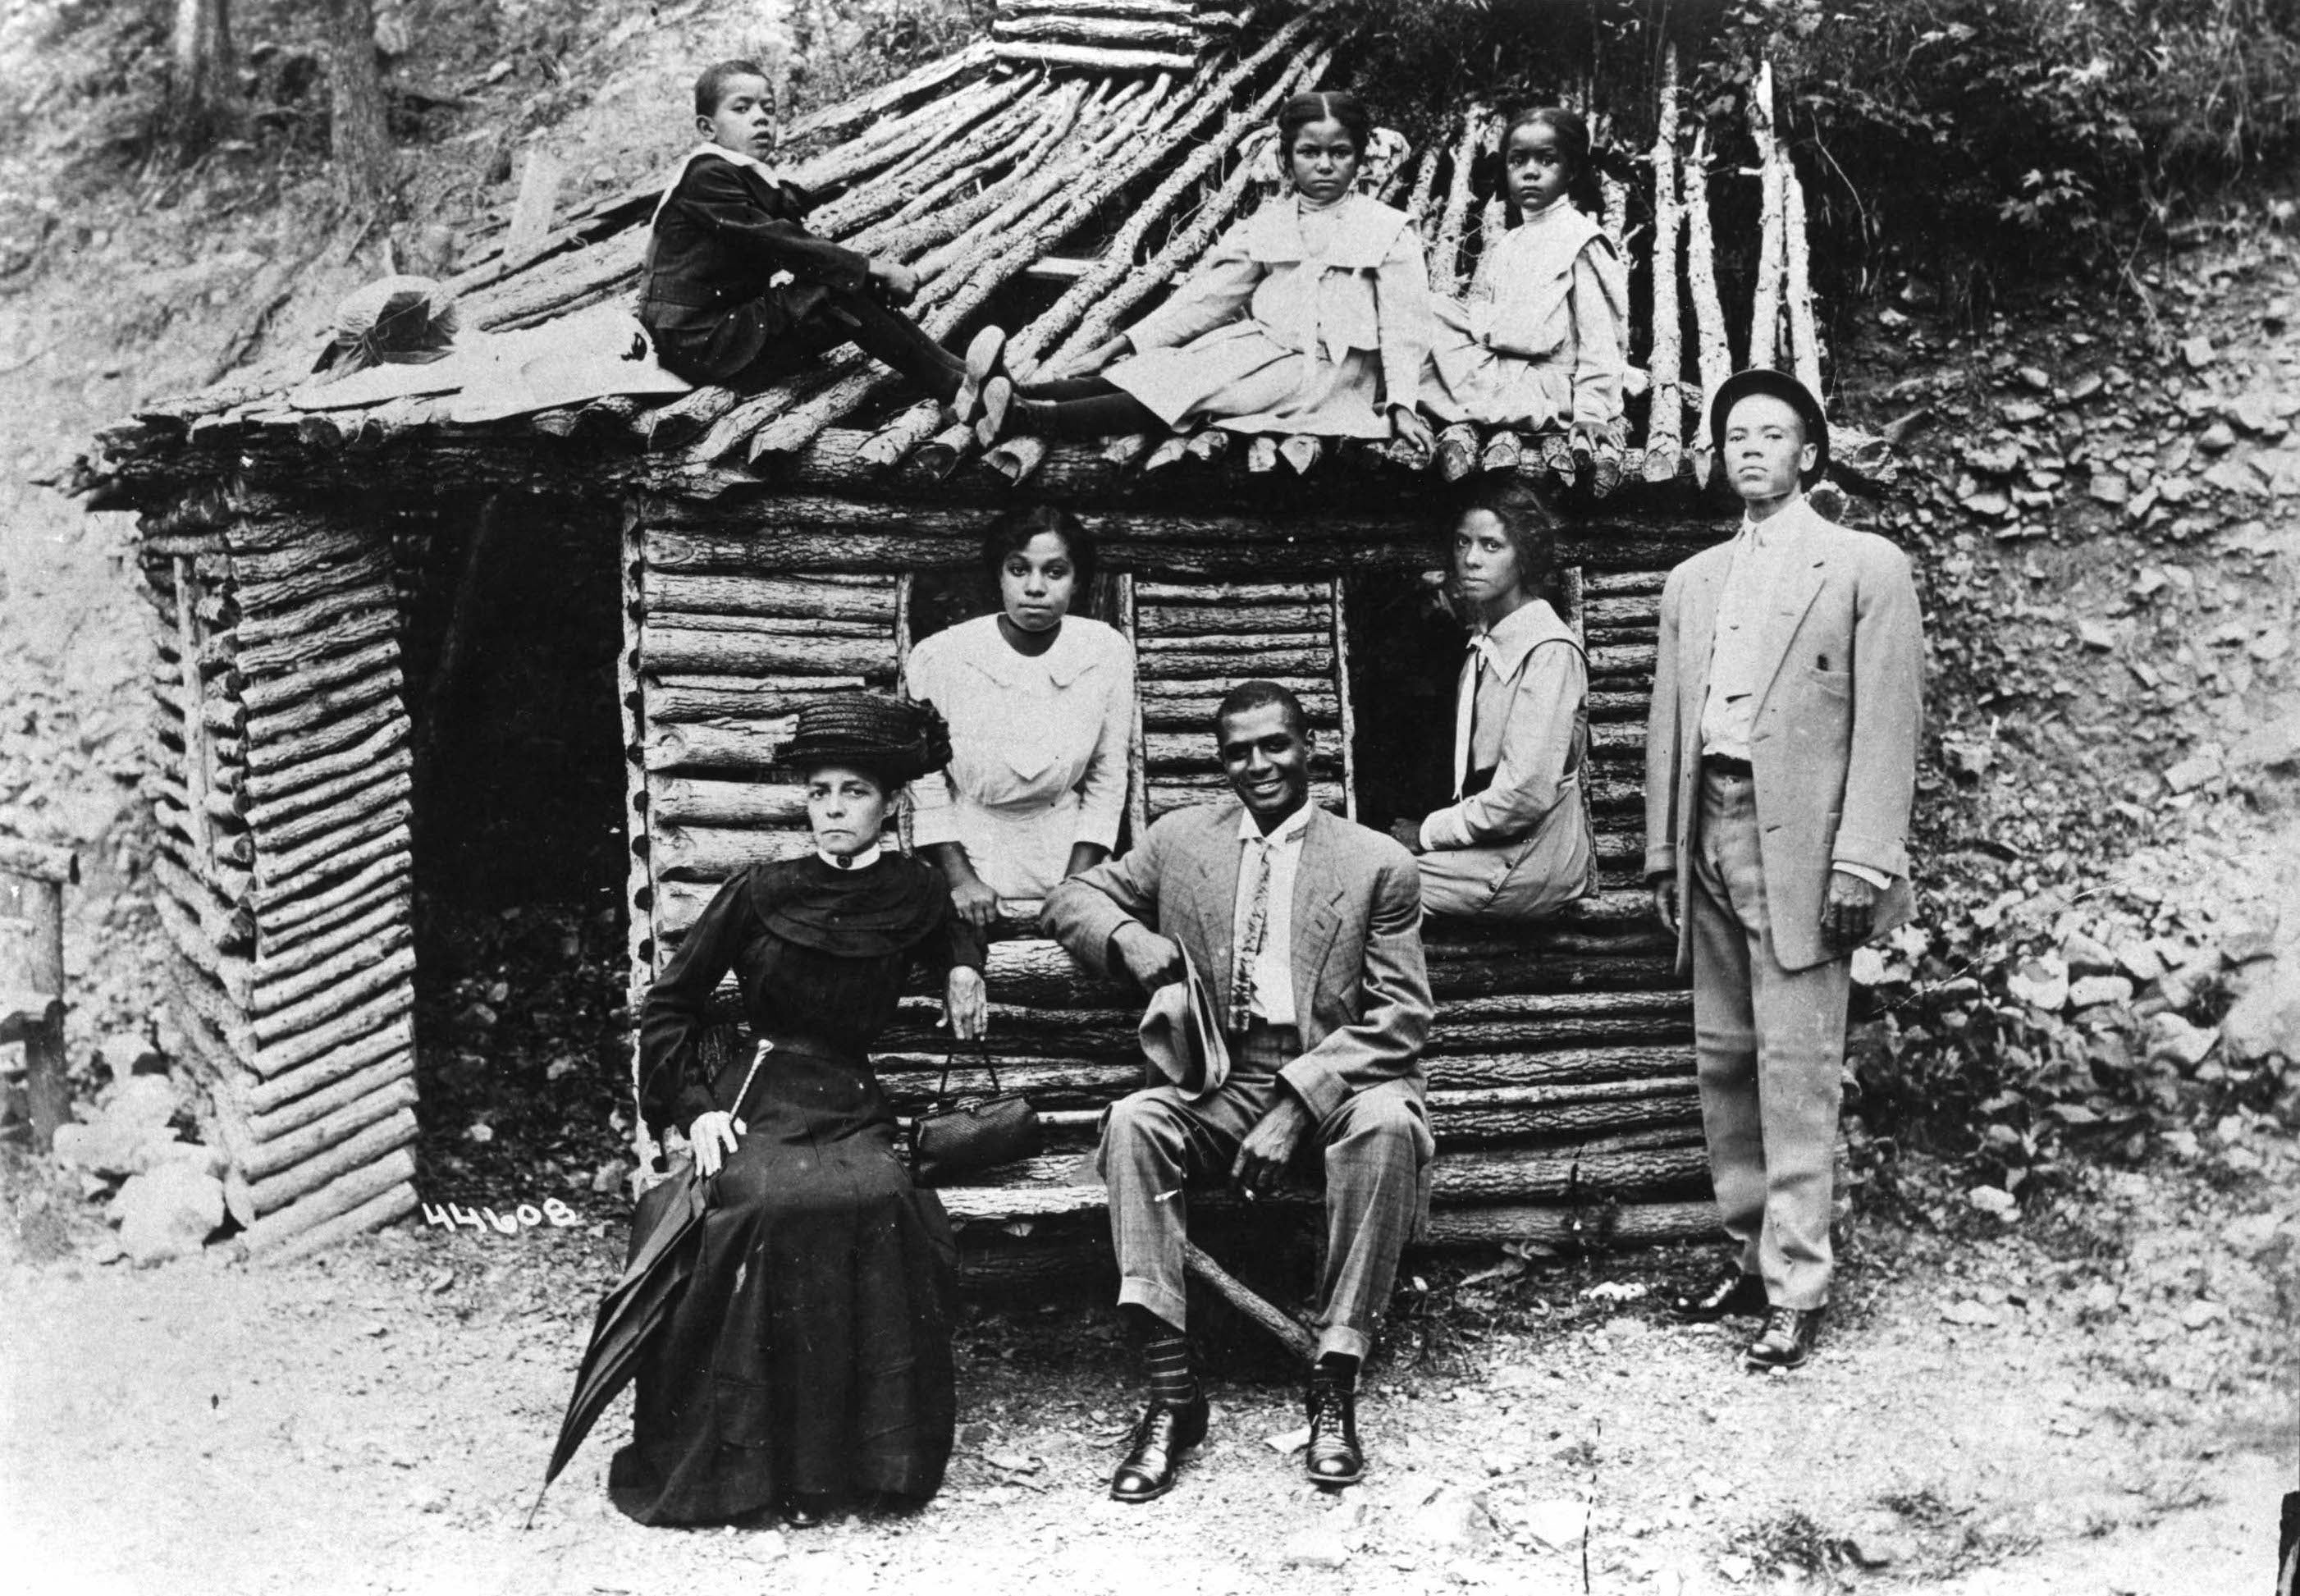 Pasadena's McAdoo family visiting relatives in Arkansas (ca. early 20th century). In 1899, the family came to Pasadena, where th